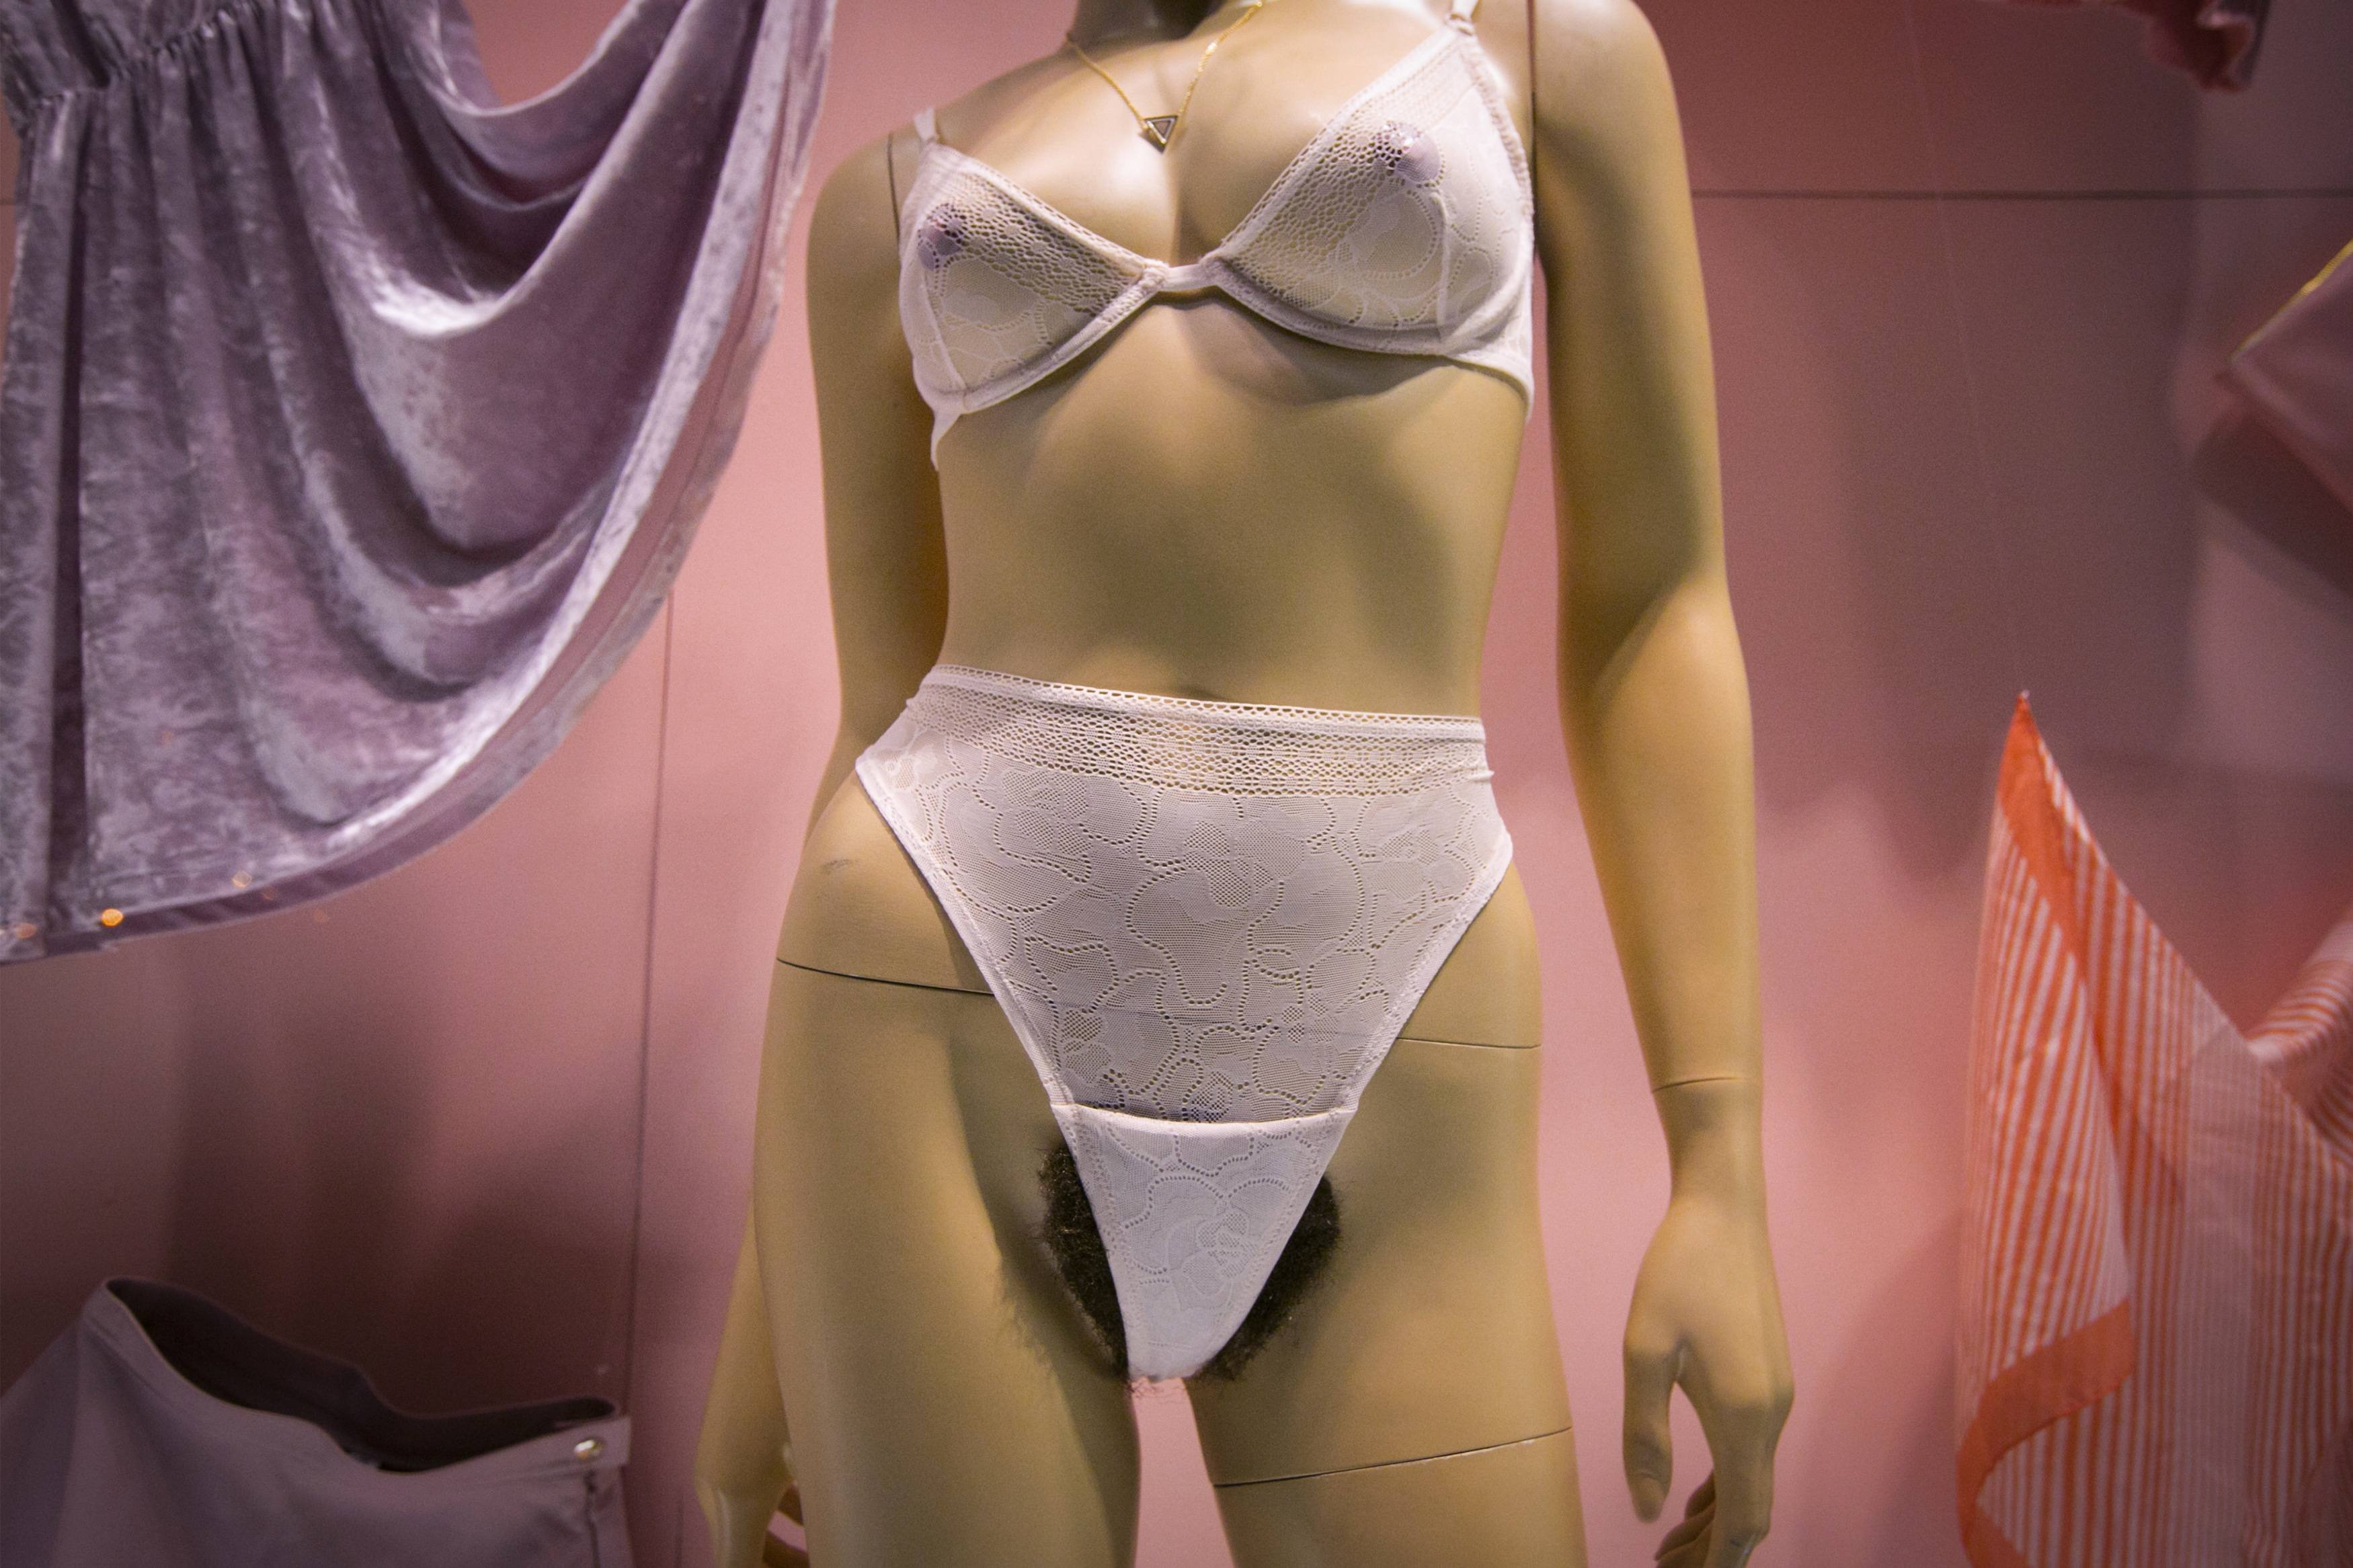 An anatomically correct female mannequin is displayed at the American Apparel store in the SoHo area of Manhattan, New York, Jan. 16, 2014. American Apparel's Lower East Side  Valentine's Day  window celebrates natural beauty, inviting passersby to explore the idea of what is  sexy  and consider their comfort with the natural female form, according to the company.